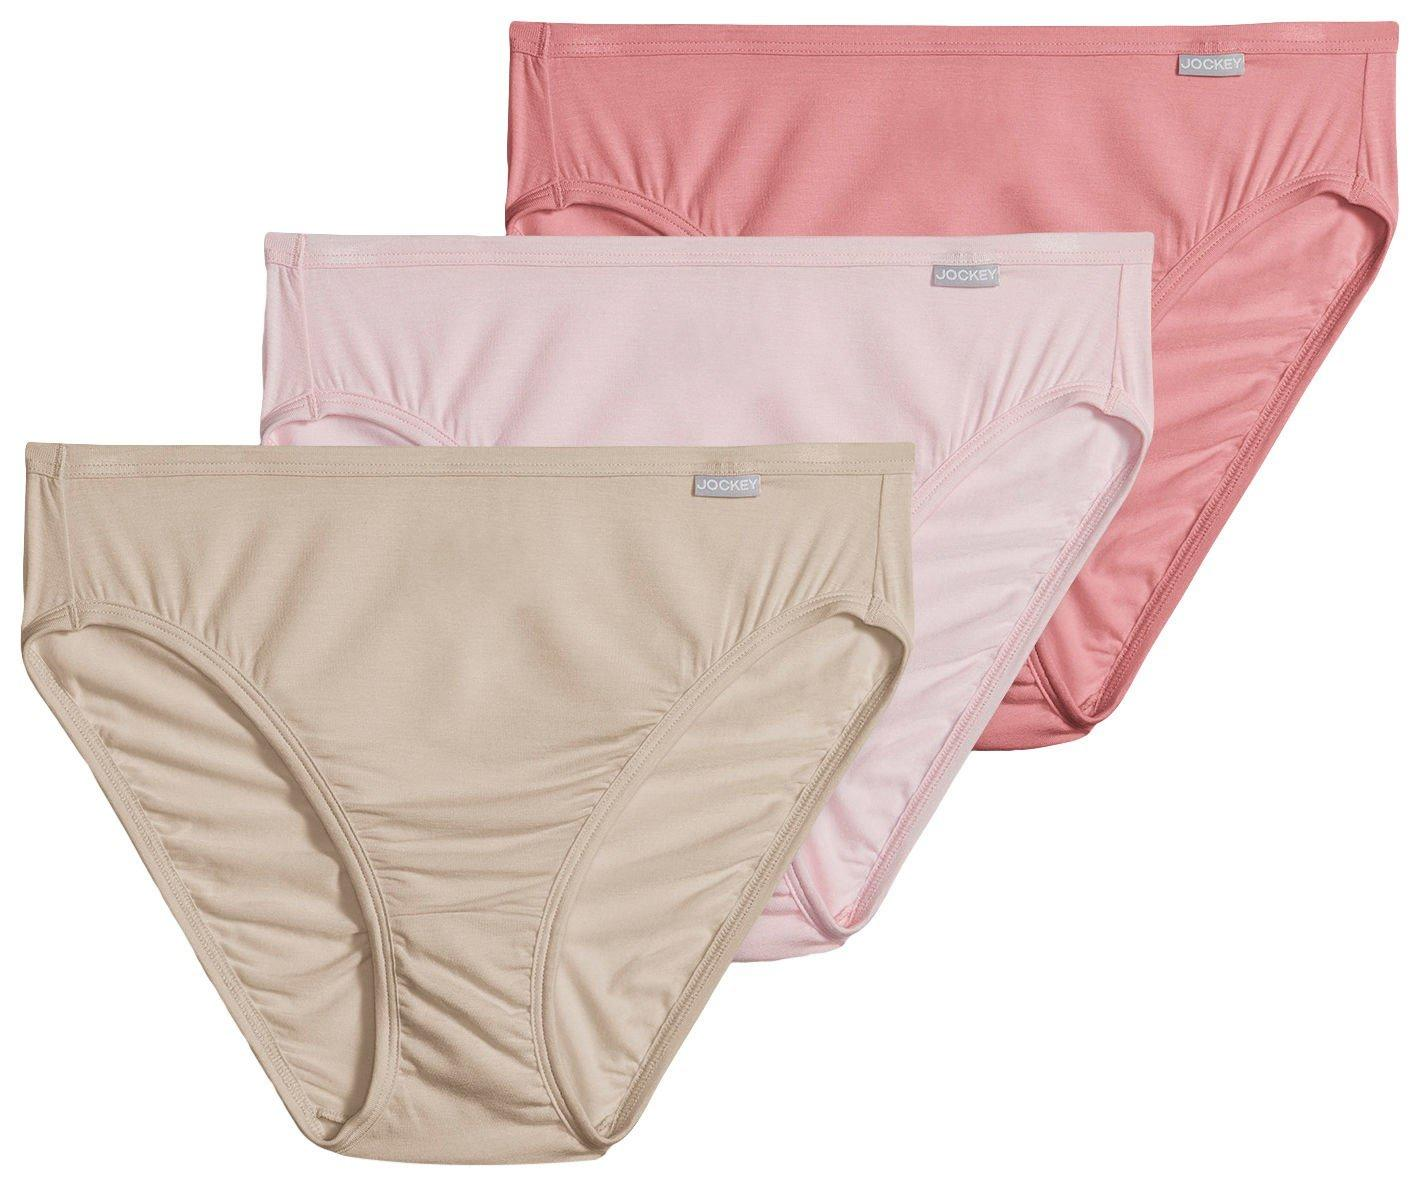 Elance supersoft french cut panties also women   underwear thongs bealls florida rh beallsflorida